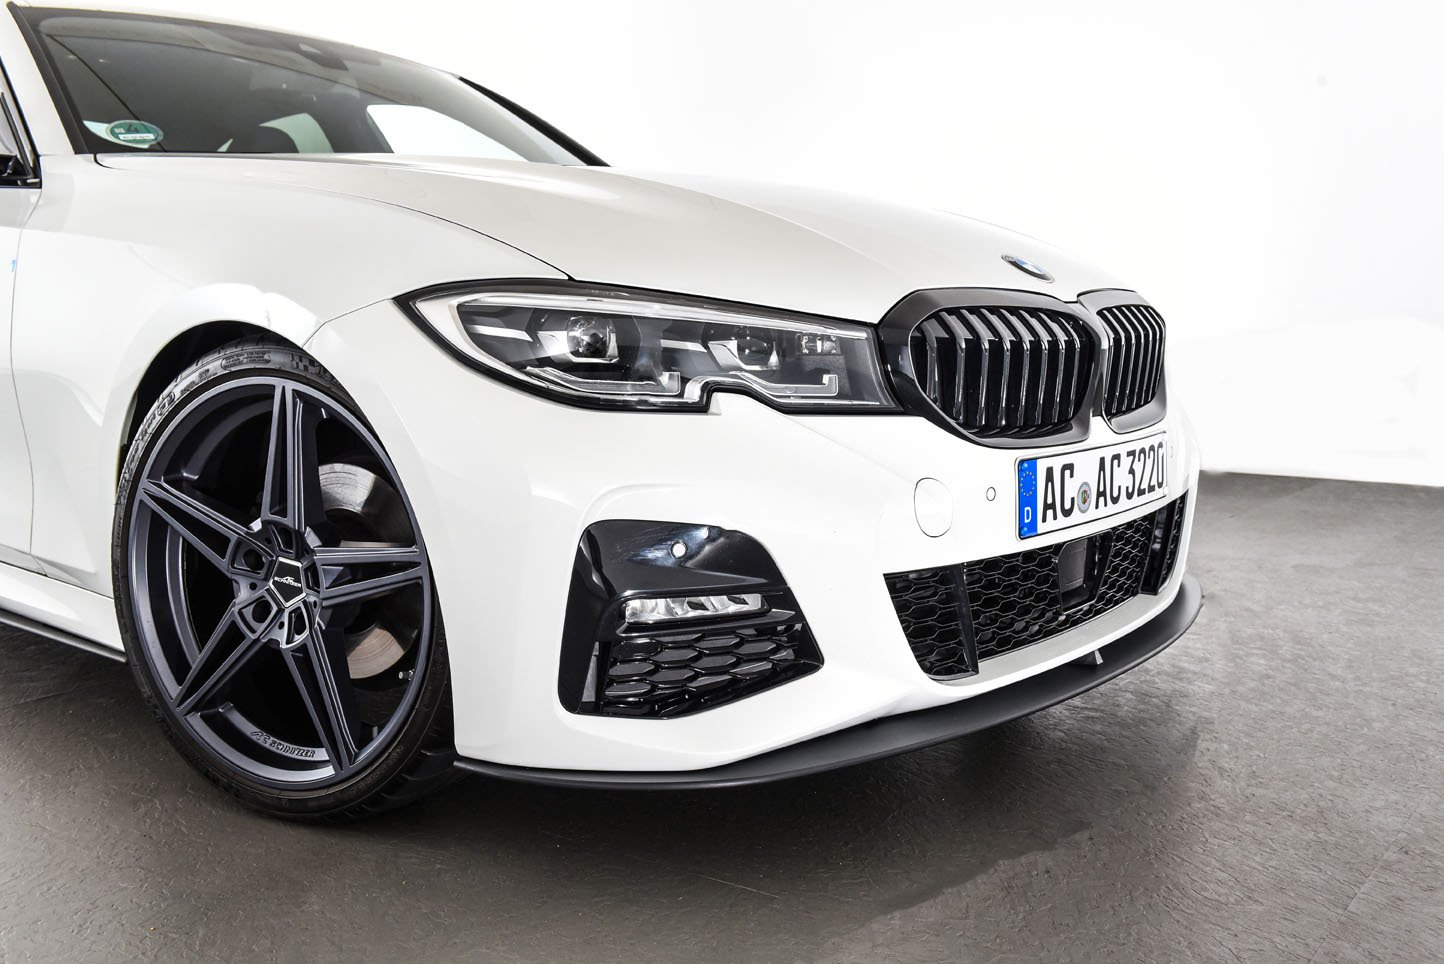 Name:  17f6e037-ac-schnitzer-tuning-parts-for-the-bmw-3-series-g20-8.jpg Views: 8021 Size:  174.3 KB